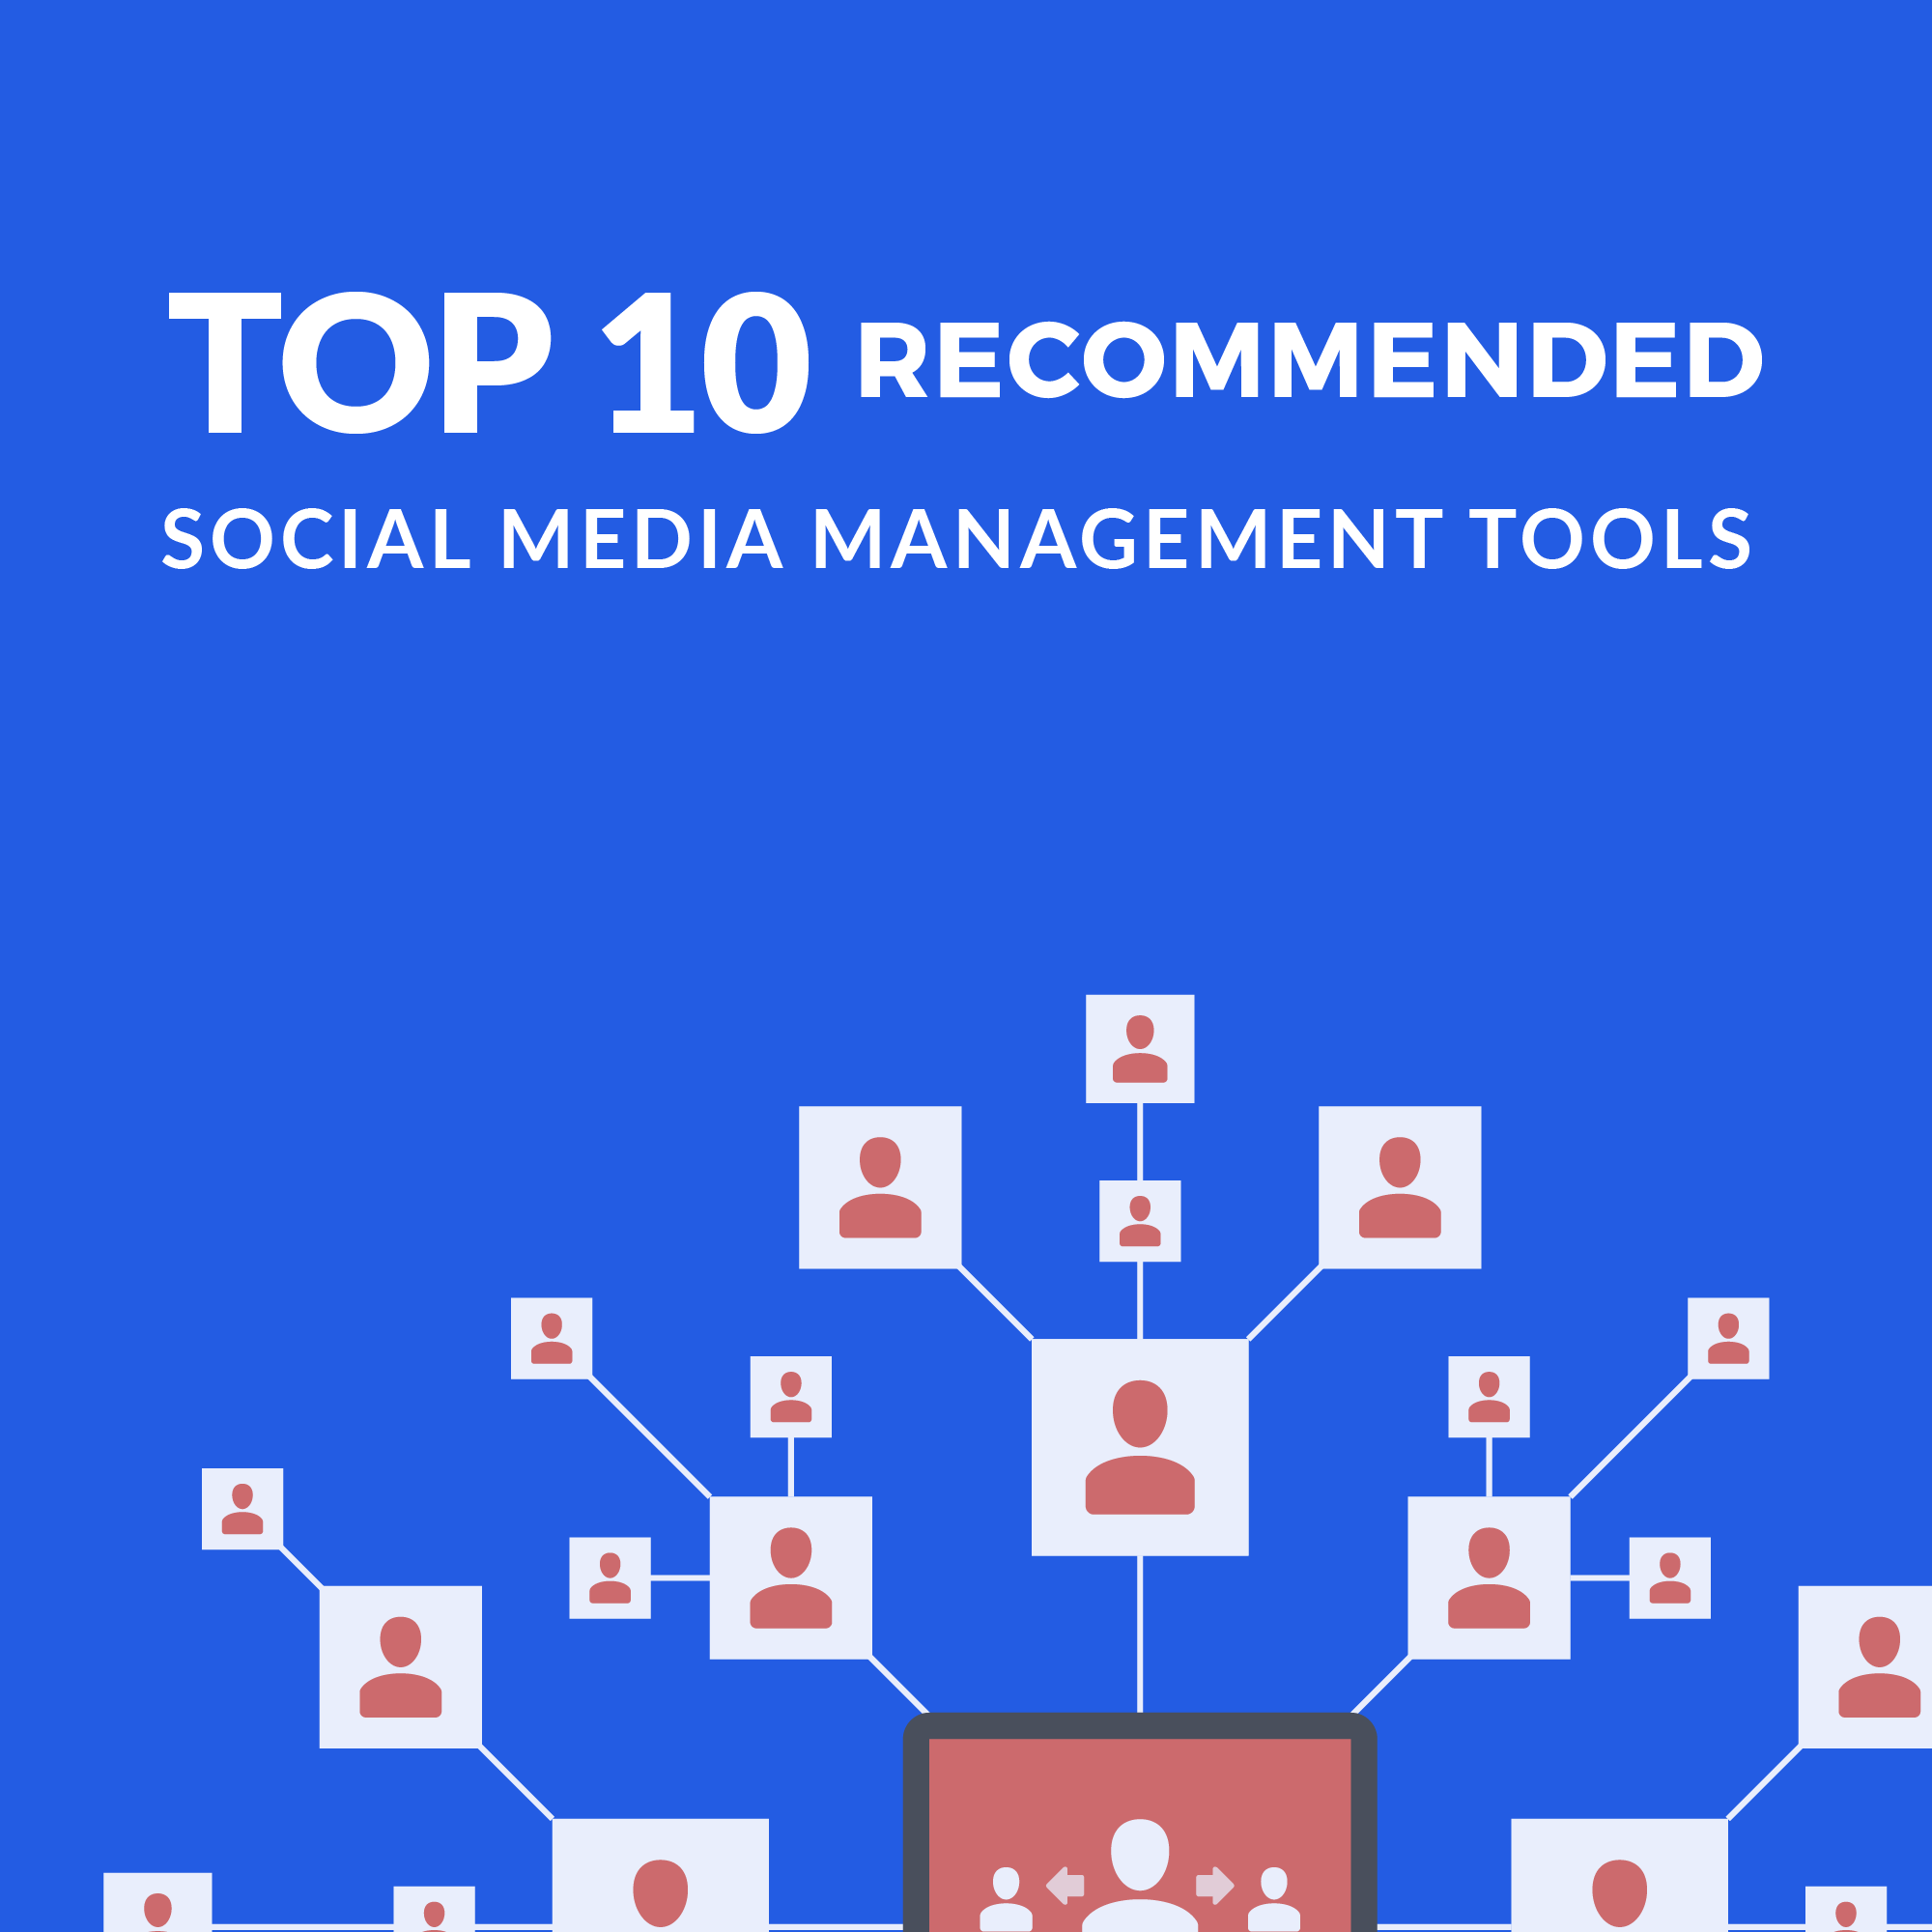 Top 10 Recommended Social Media Management Tools